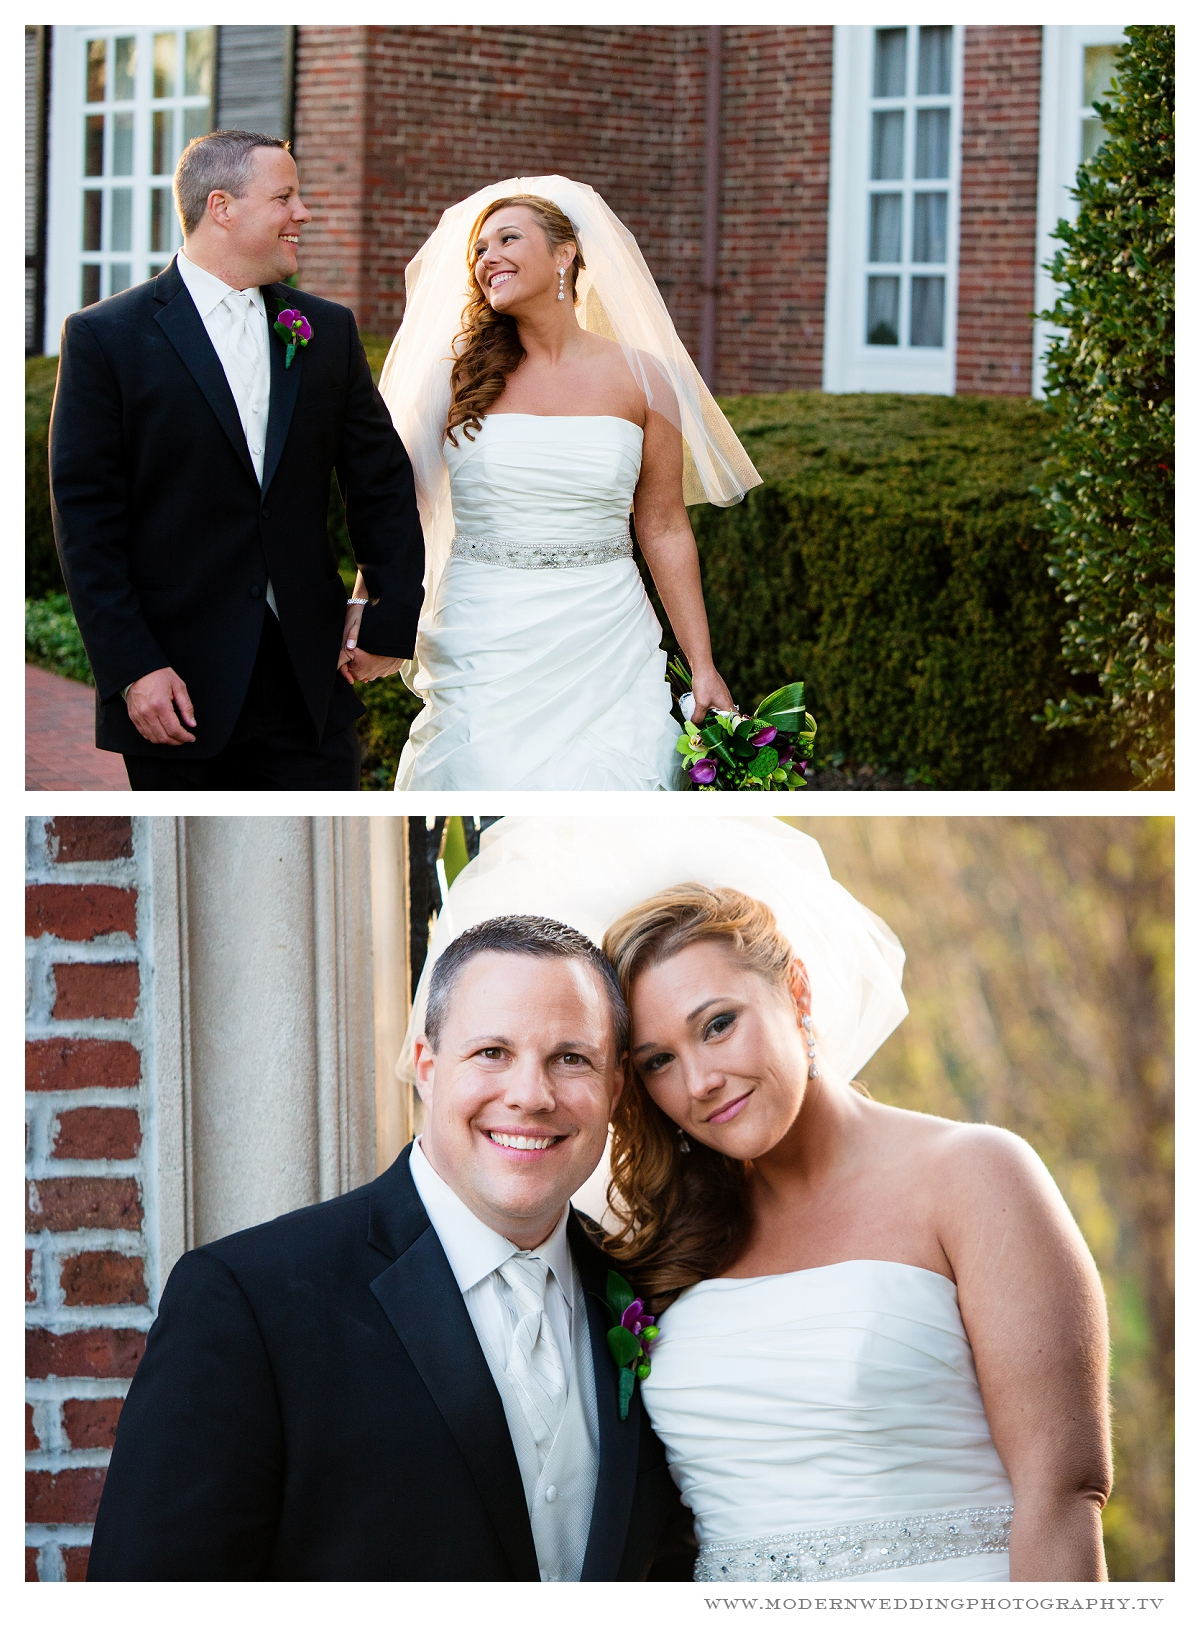 Glen Cove Mansion Wedding- Modern wedding Photography 20 .JPG